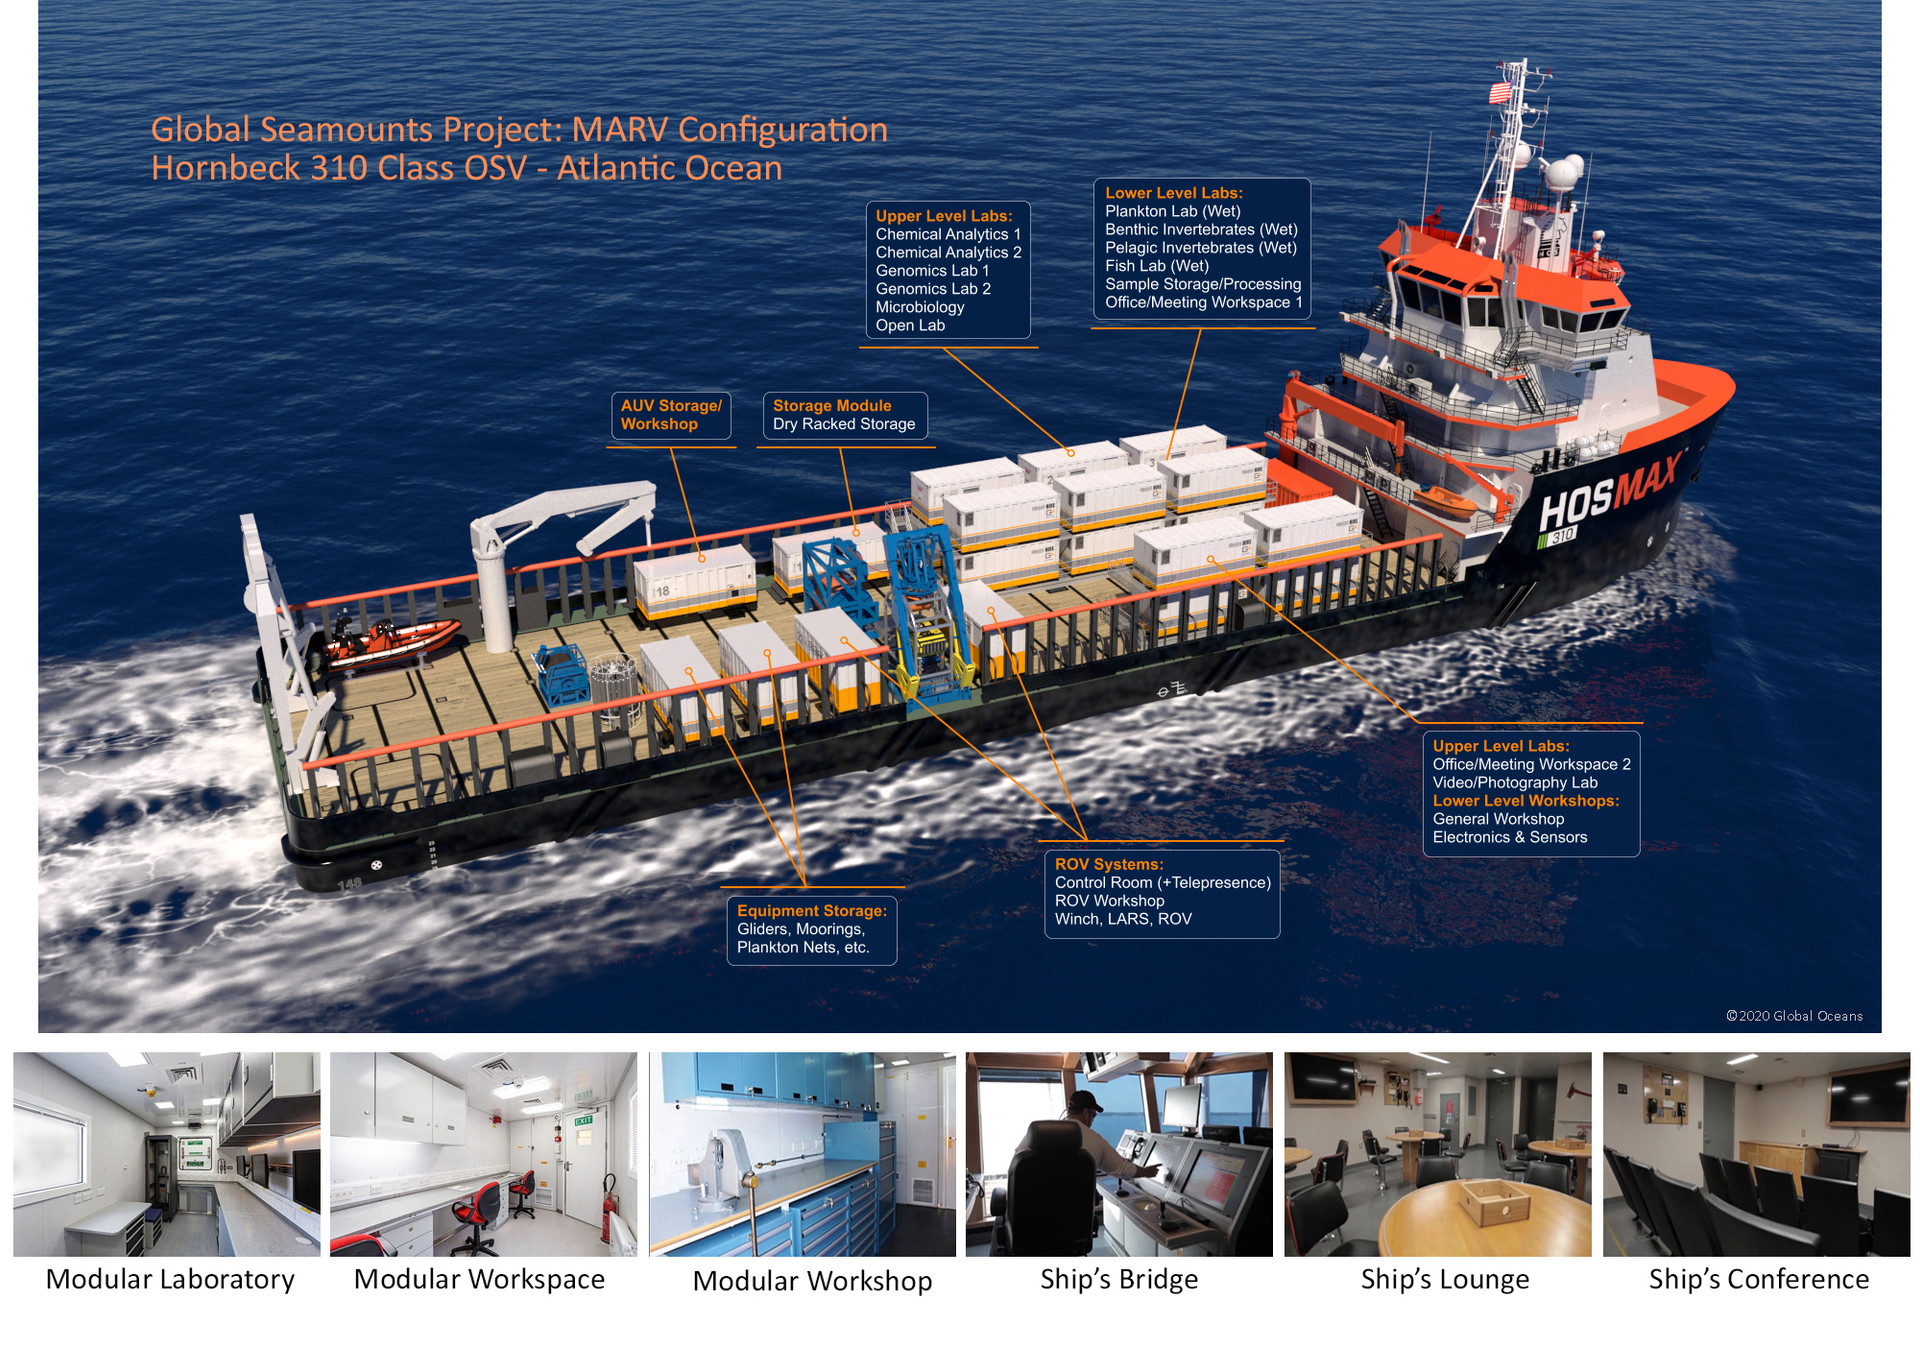 Figure 5: MARV configuration for the science deck of the Global Seamounts Project.